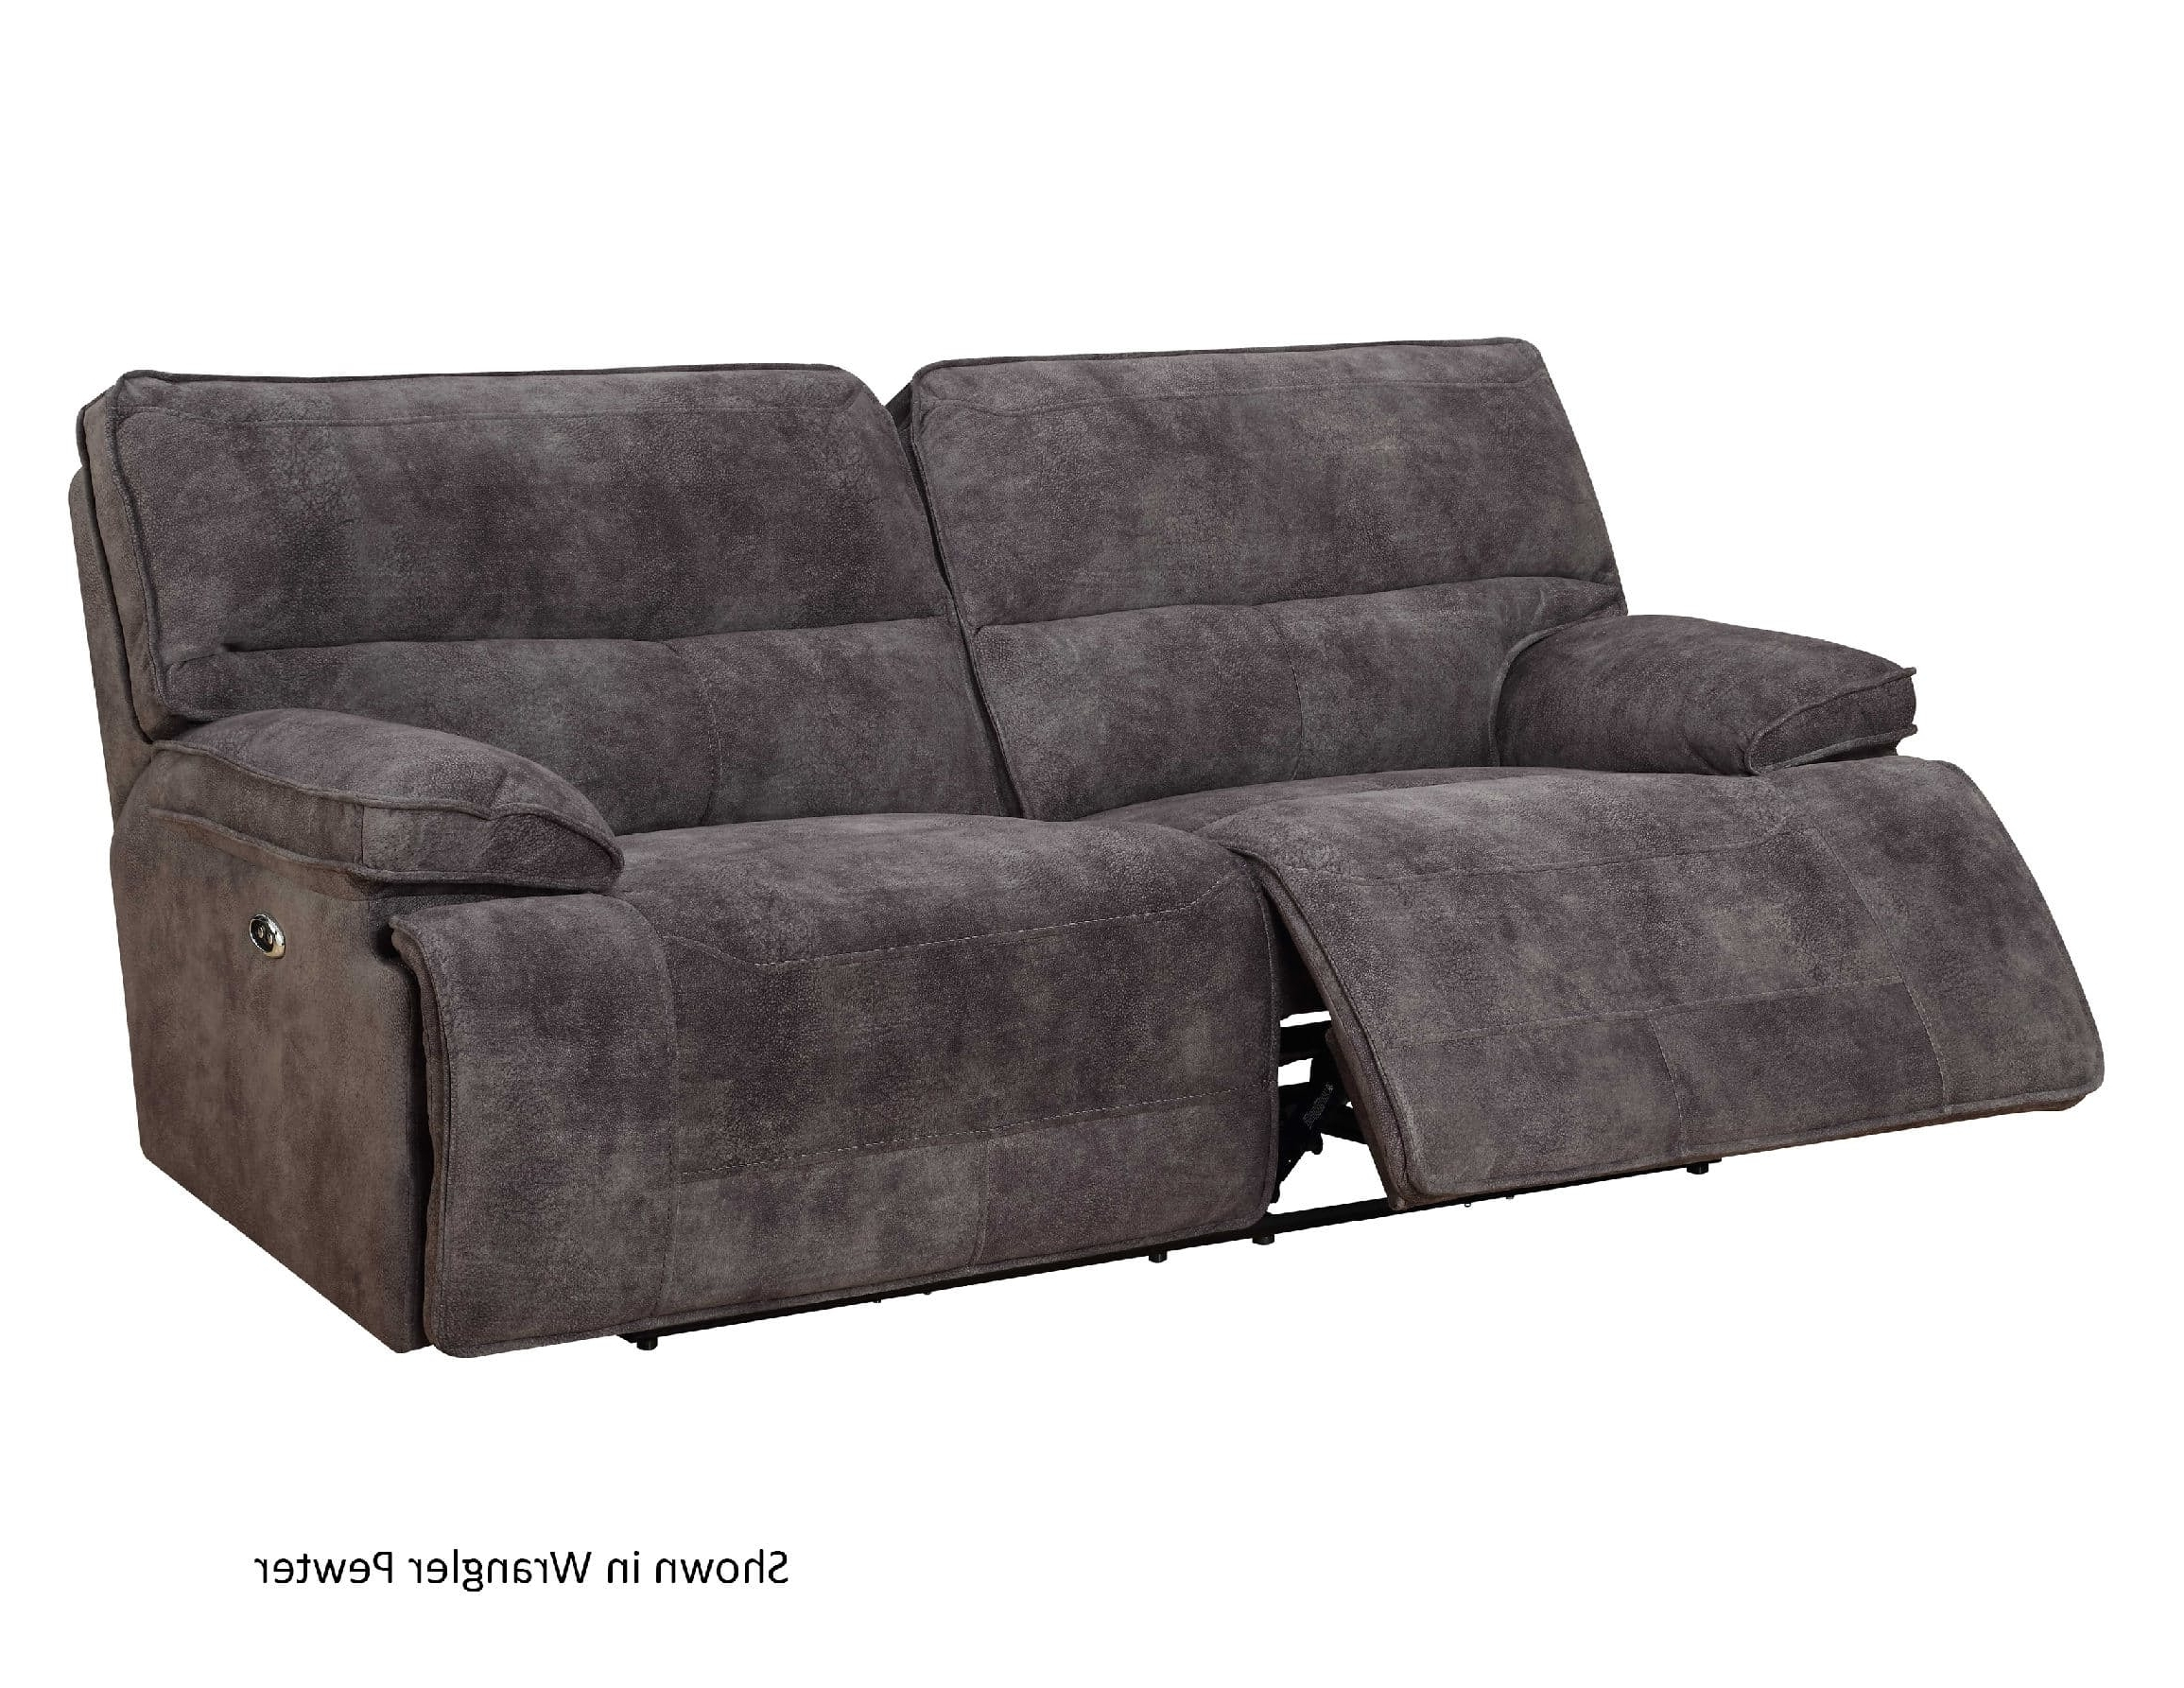 Widely Used Recliner Sofas In Paris Power Dual Reclining Sofa And Dual Reclining Love Seat With (View 17 of 17)